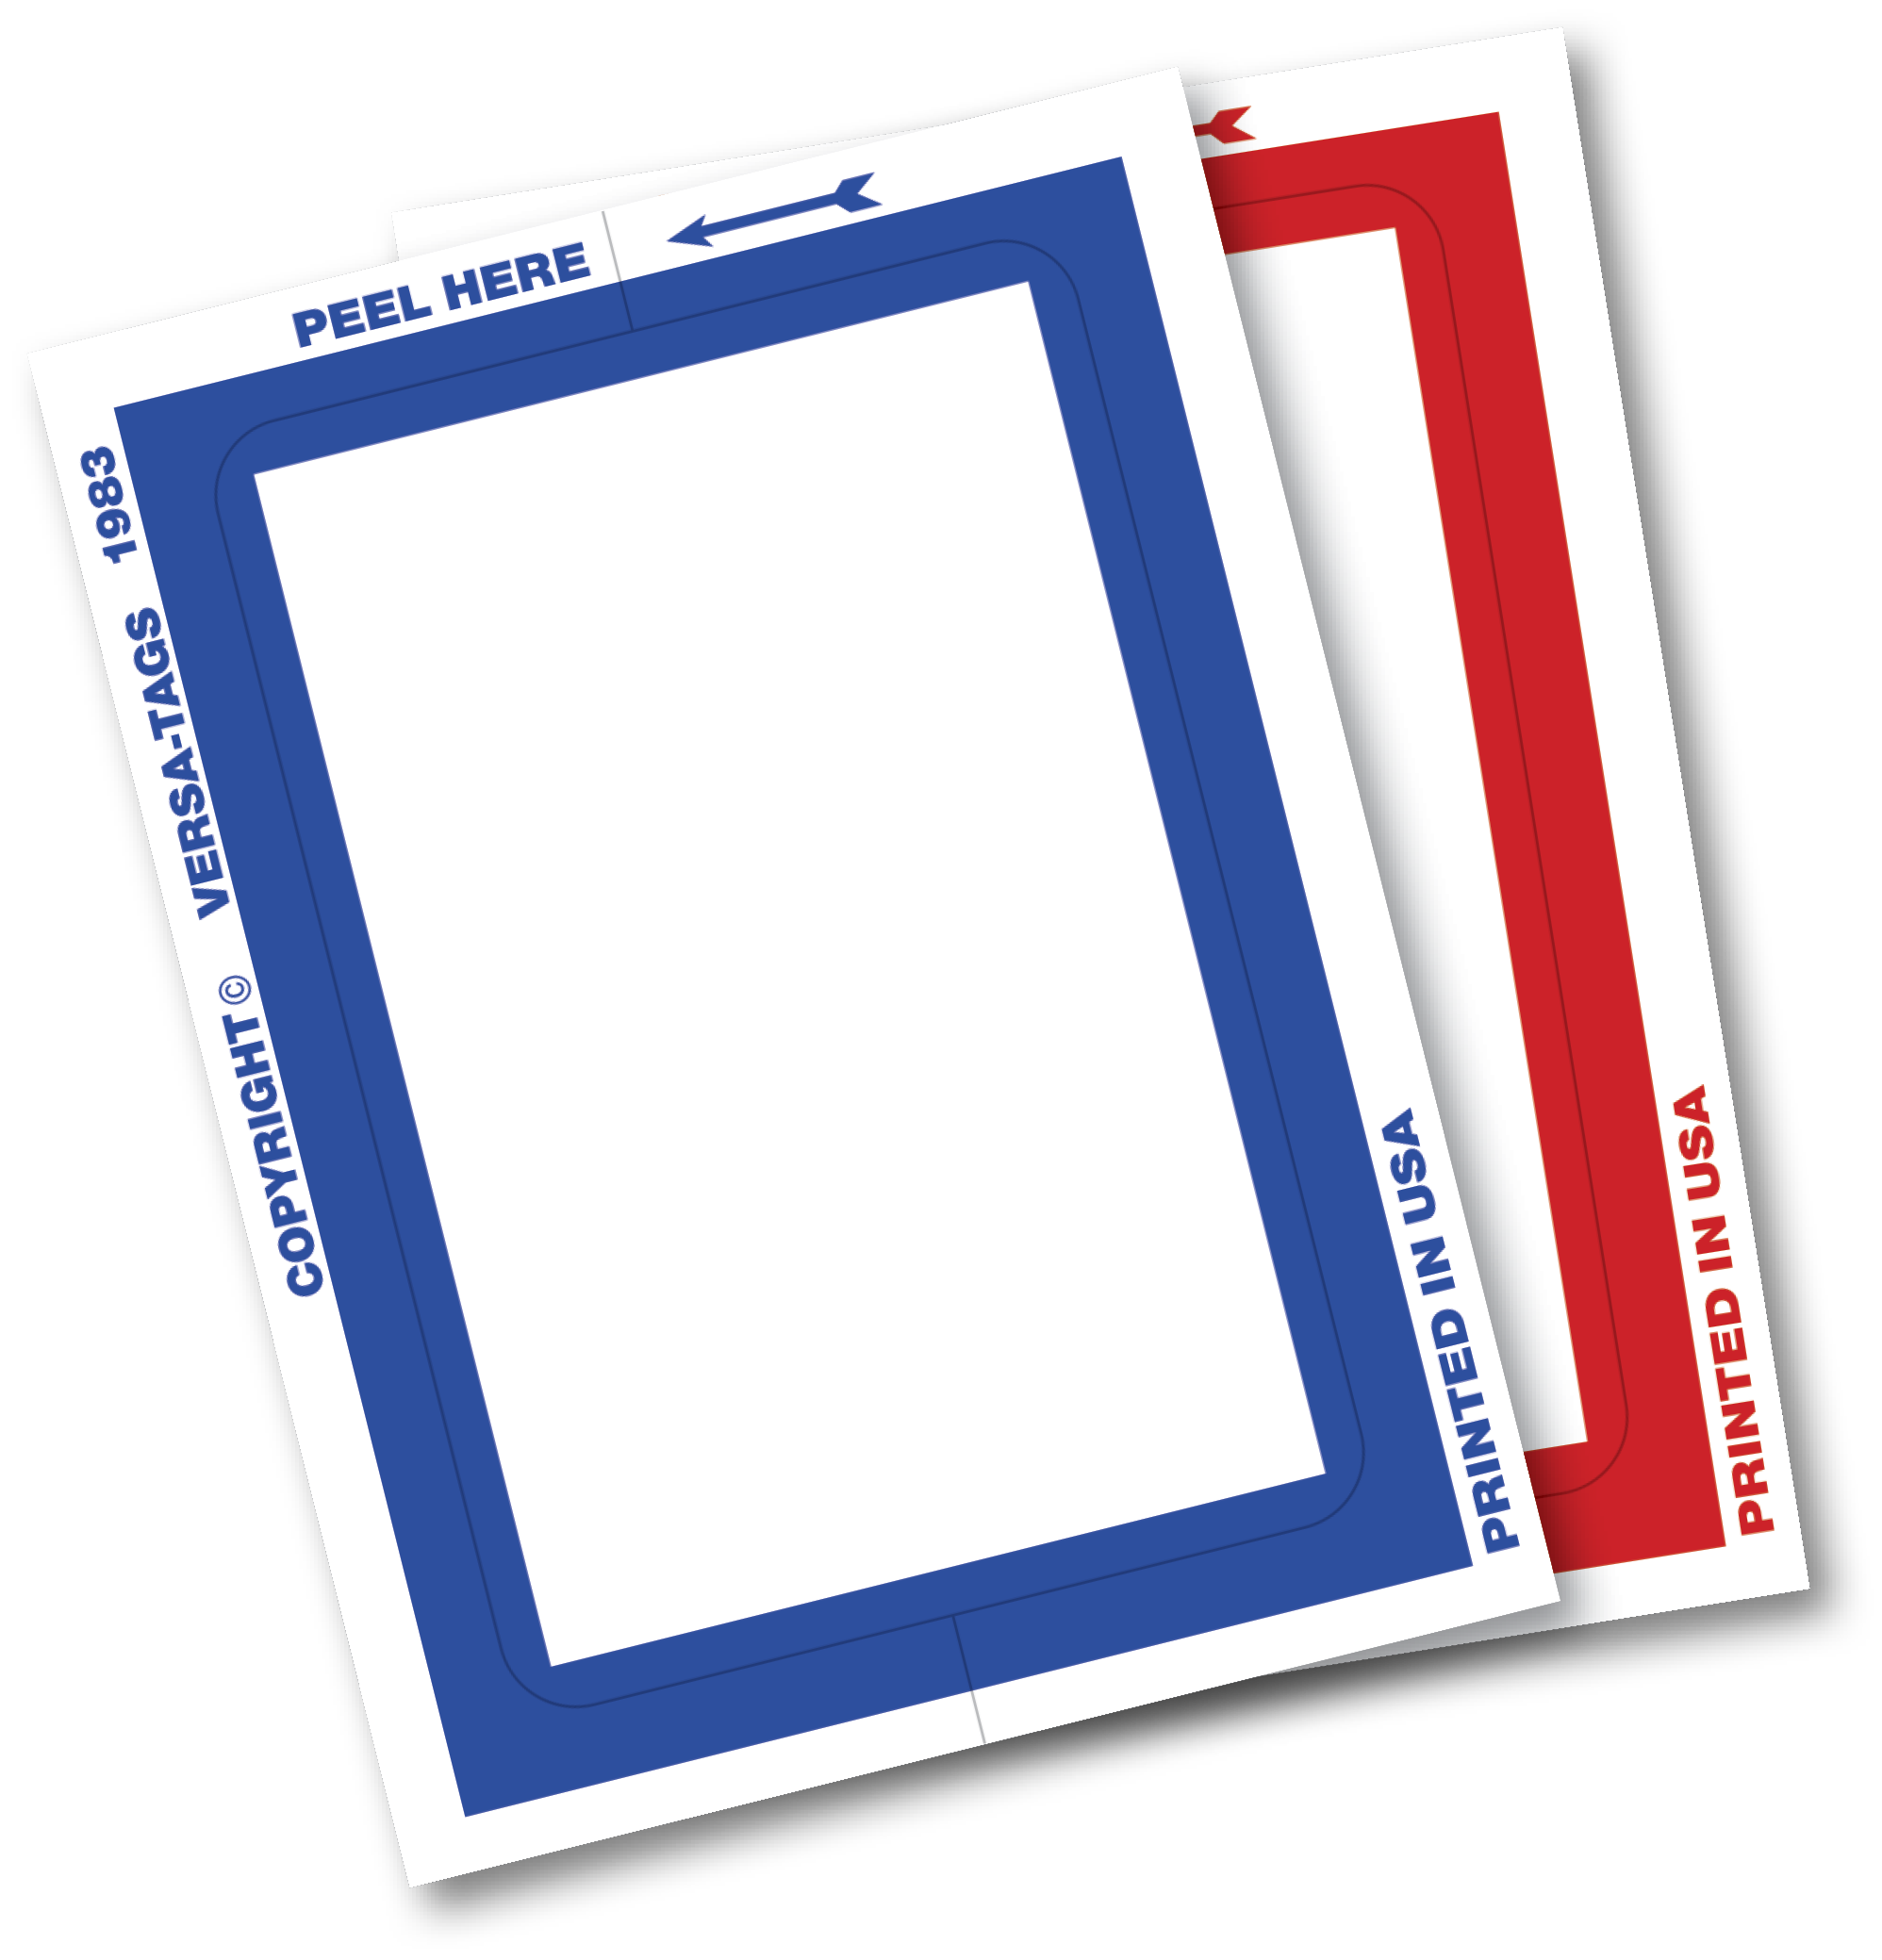 KLEER-BAK BORDER AND BLANK STICKERS